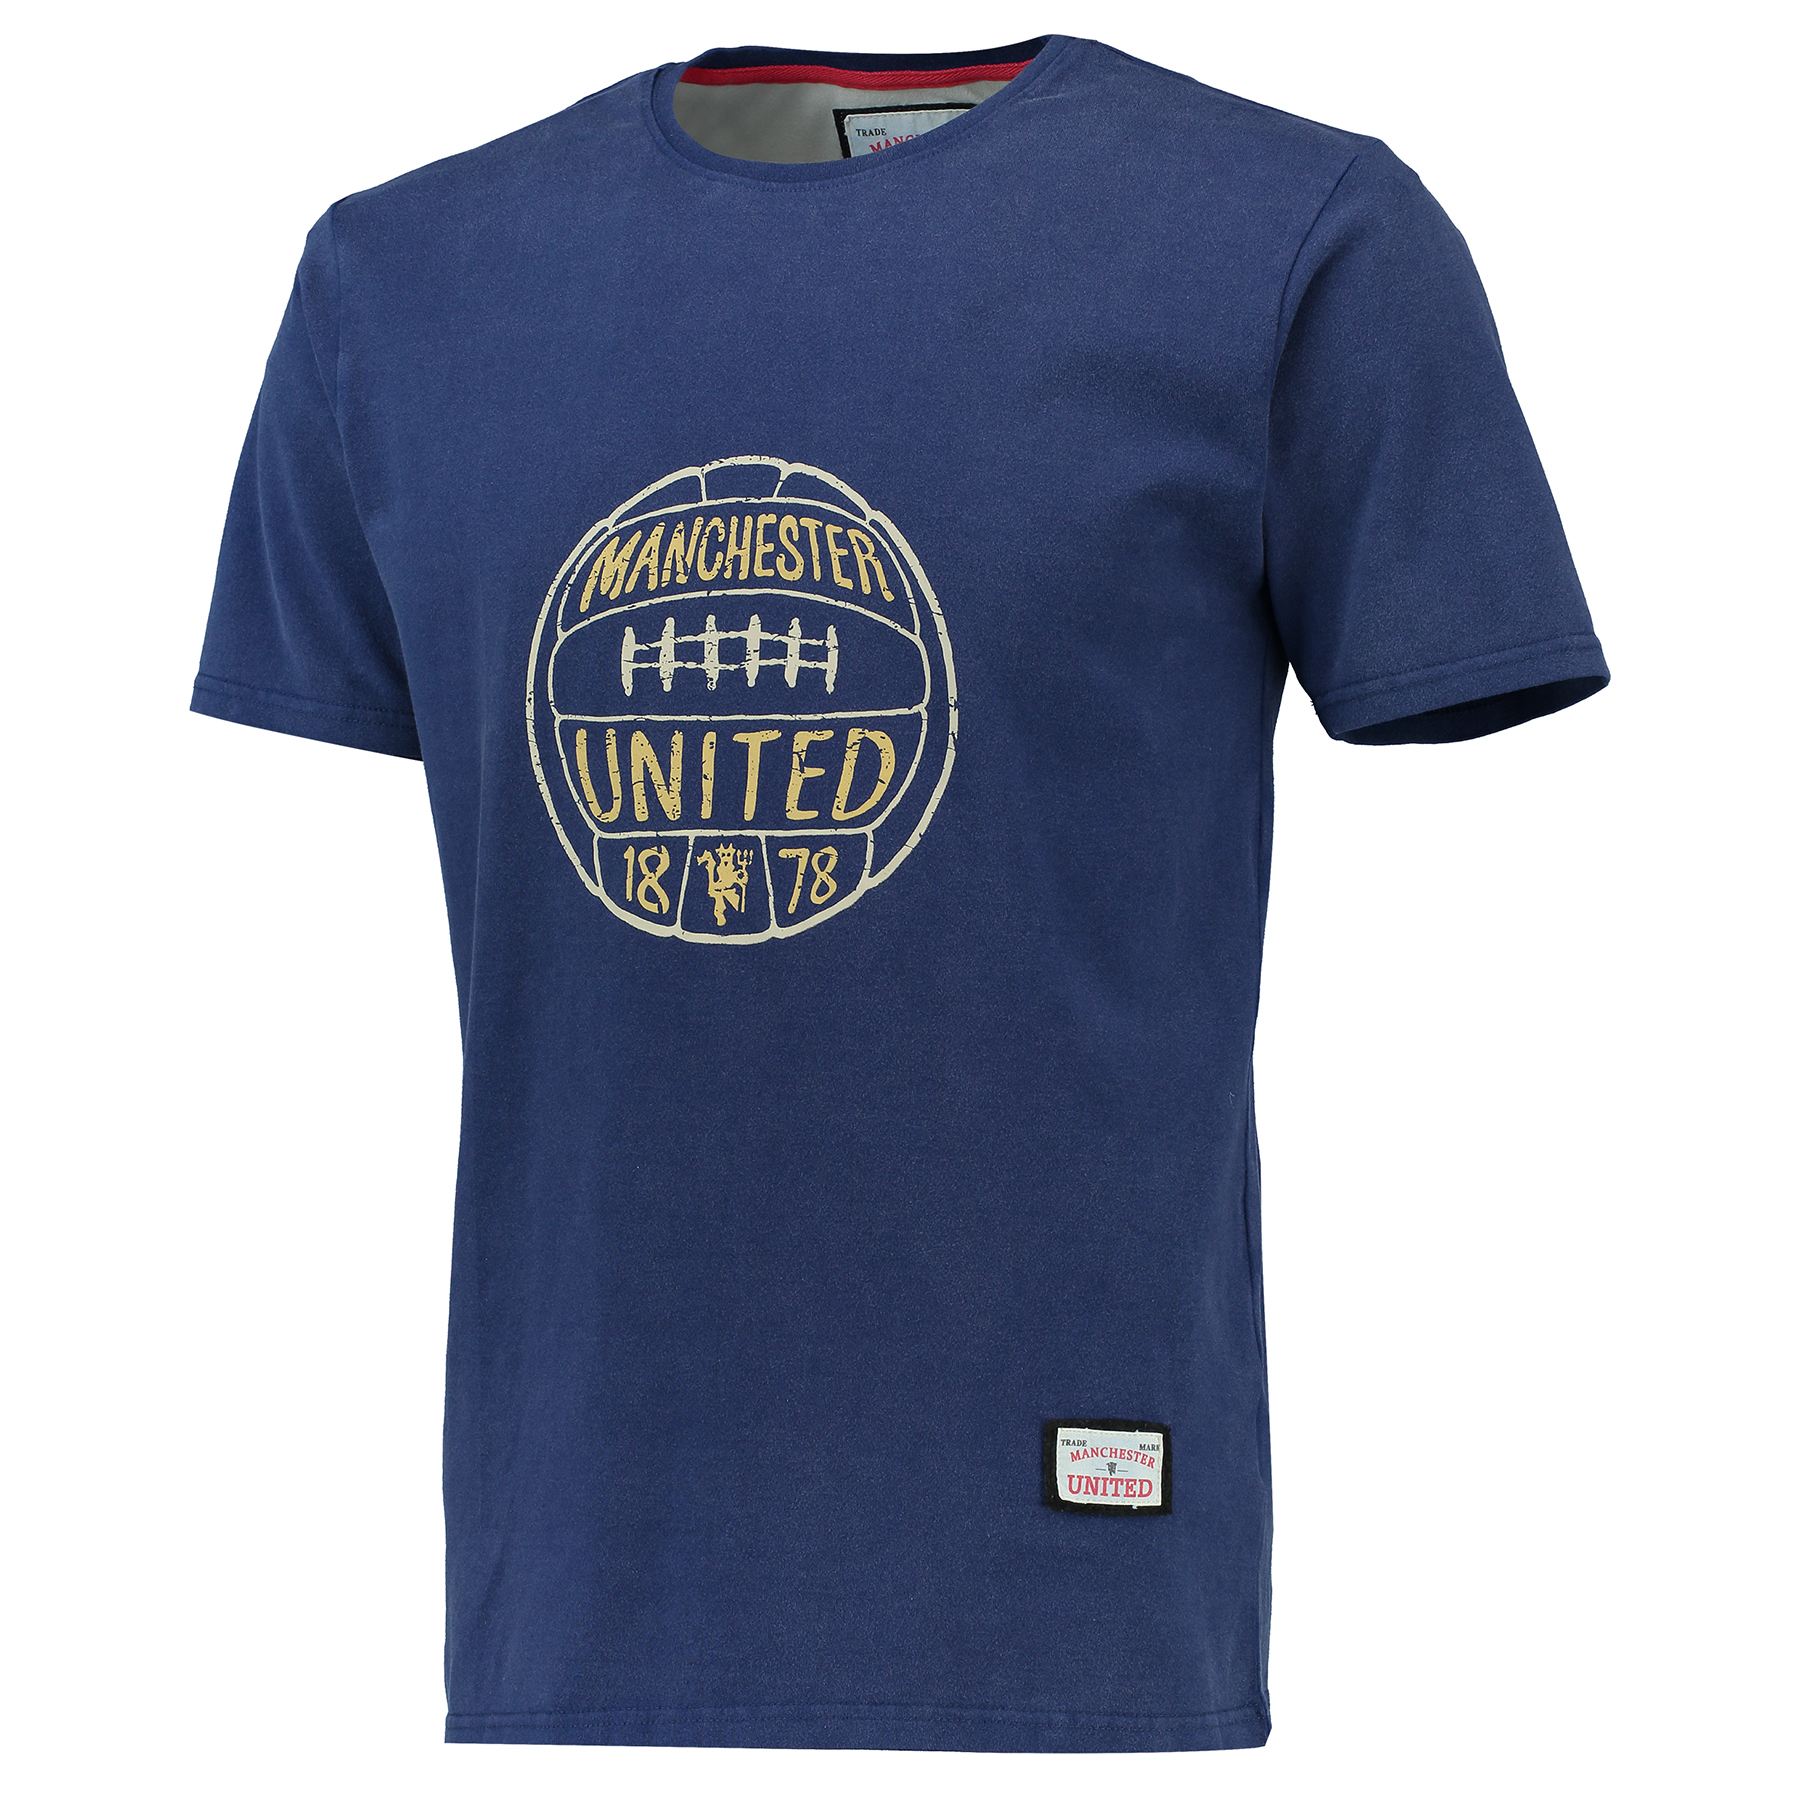 Manchester United Premium Football T-Shirt - Navy - Mens